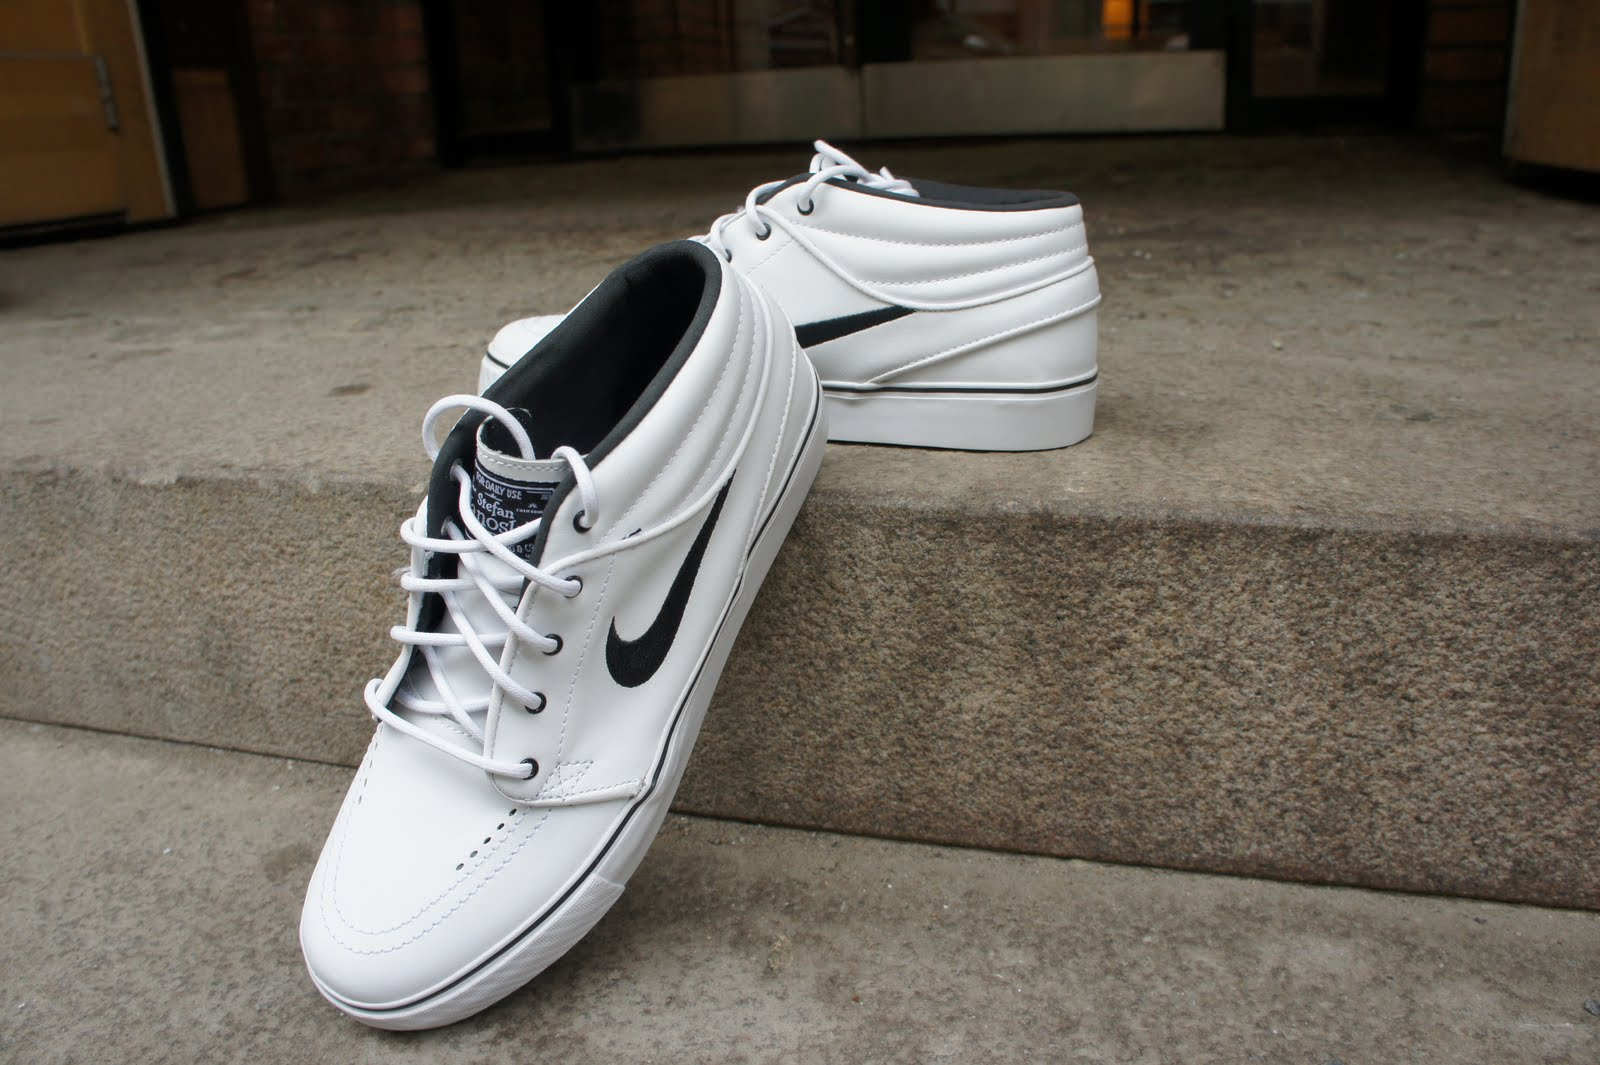 a46fec0bb Check out the new fresh Janoski Mid + the new Nike Sb Trailer at the Cali  OG Blog!